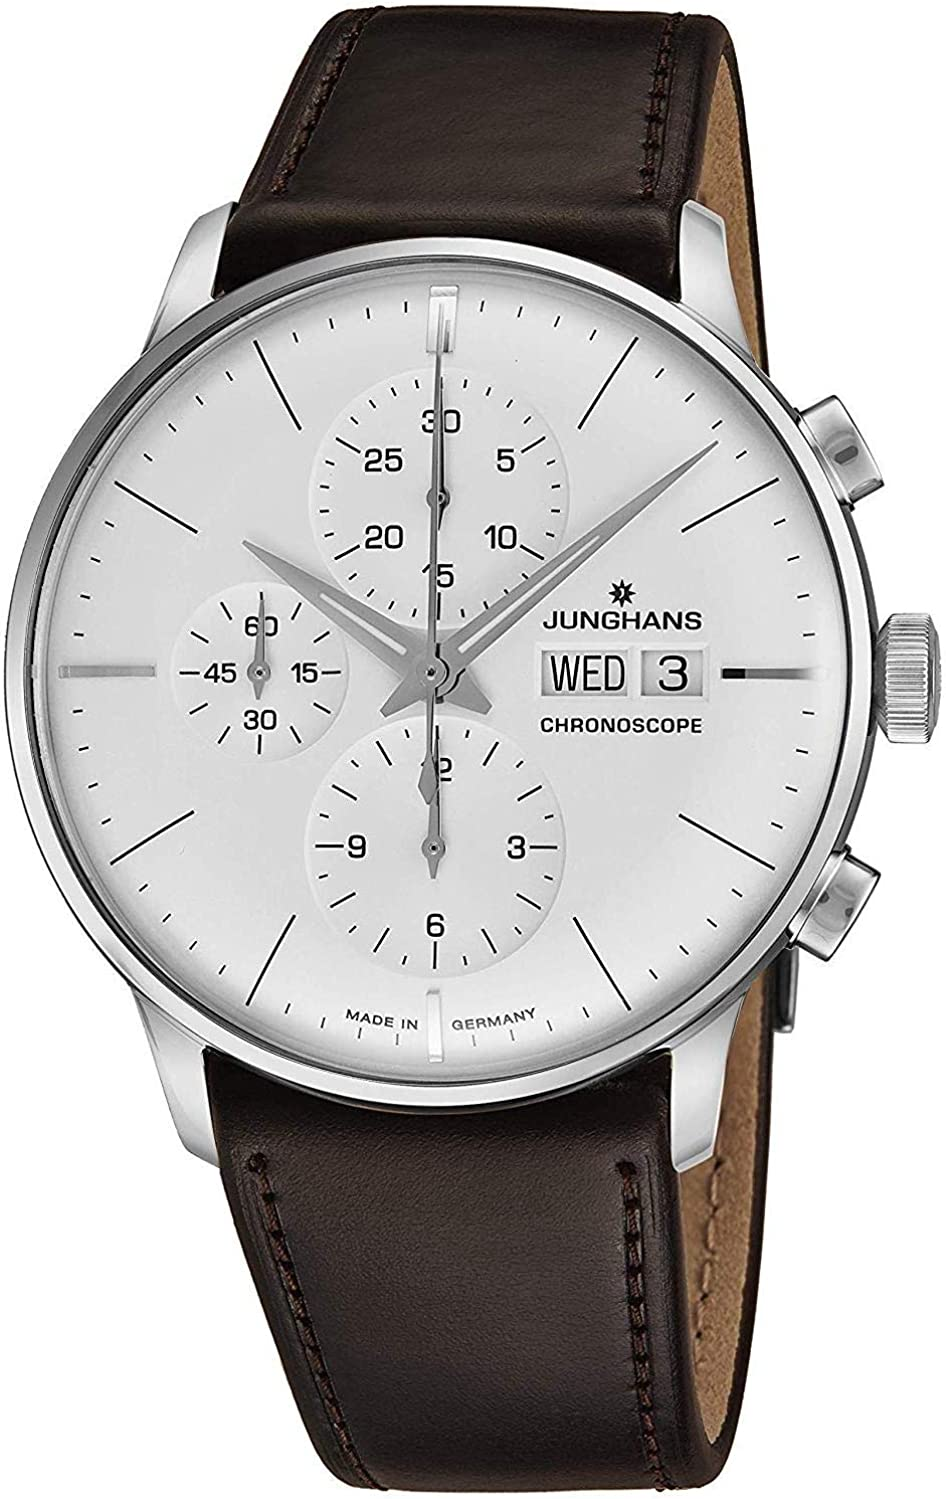 Junghans Meister Chronoscope Mens Day Date Automatic Chronograph Watch – 40mm Analog Silver Face with Luminous Hands – Stainless Steel Burgundy Leather Band Luxury Watch Made in Germany 027 4120.01